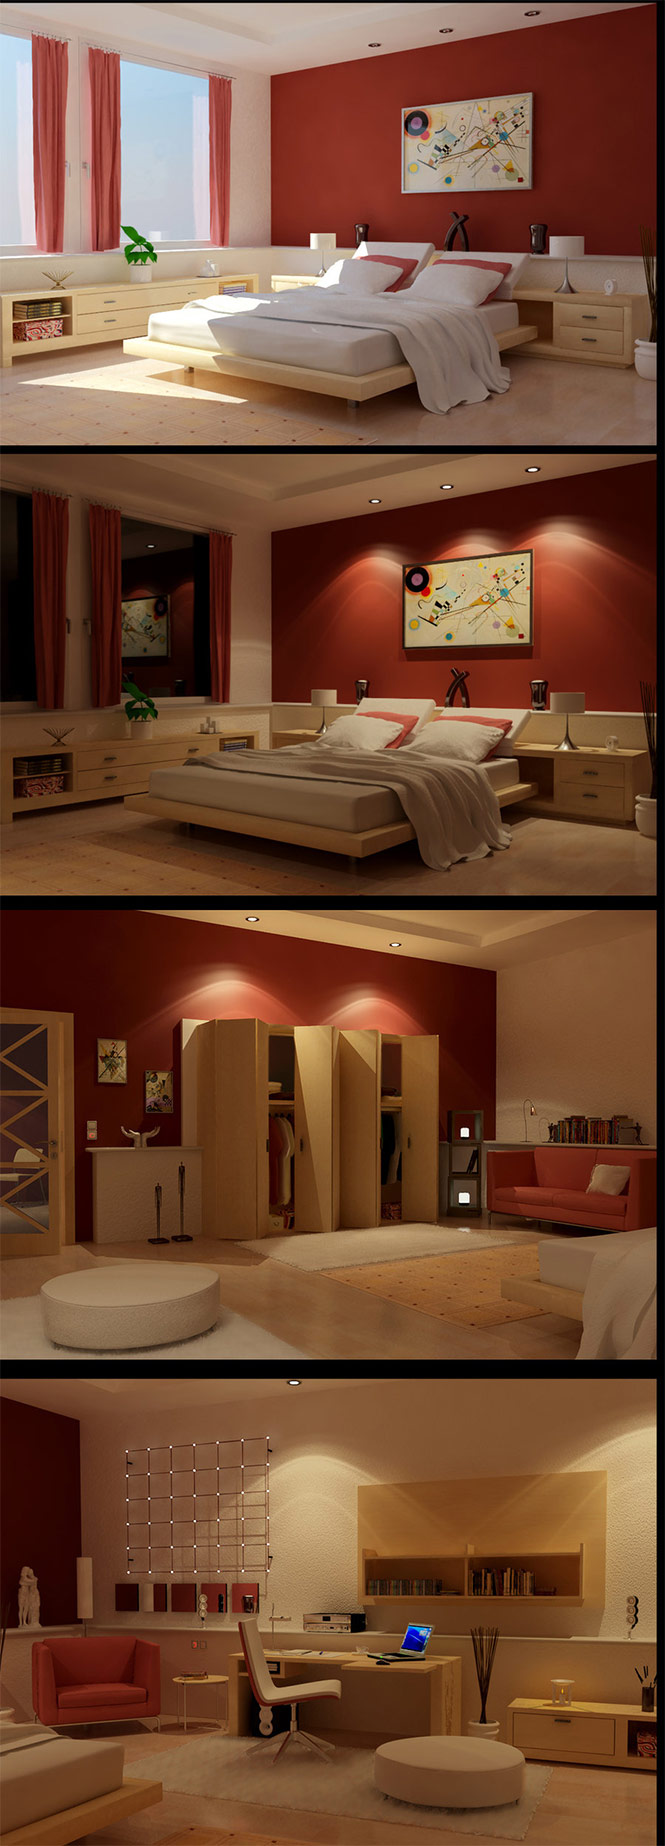 Enjoyable Colorful Bedroom For Unique Room Coloring : Inspirational Red Themed Bedroom Design Ideas